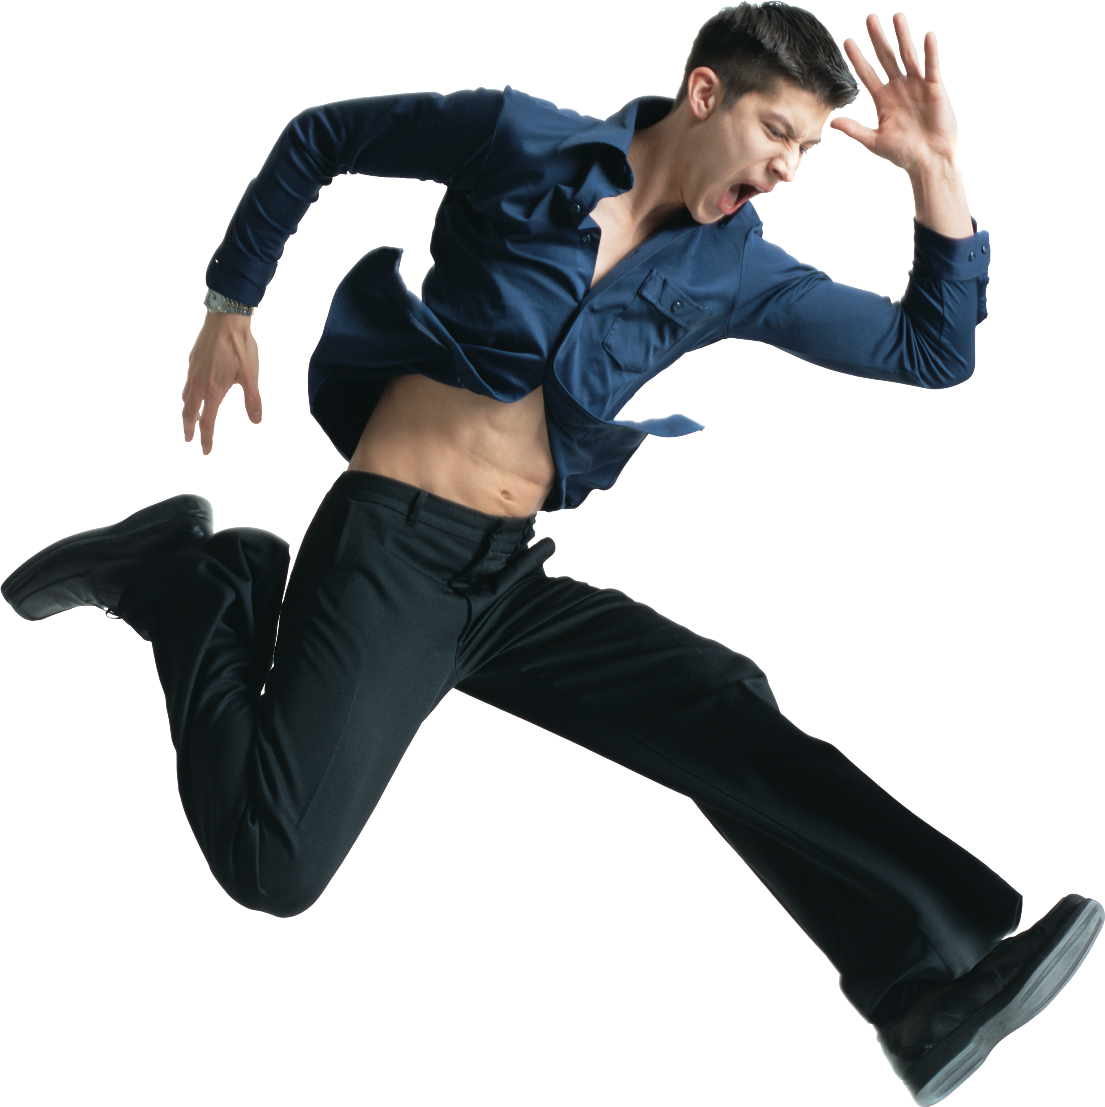 Youu0027re now just a few simple clicks away from A PREMIER EVENT. - Man Jumping For Joy PNG